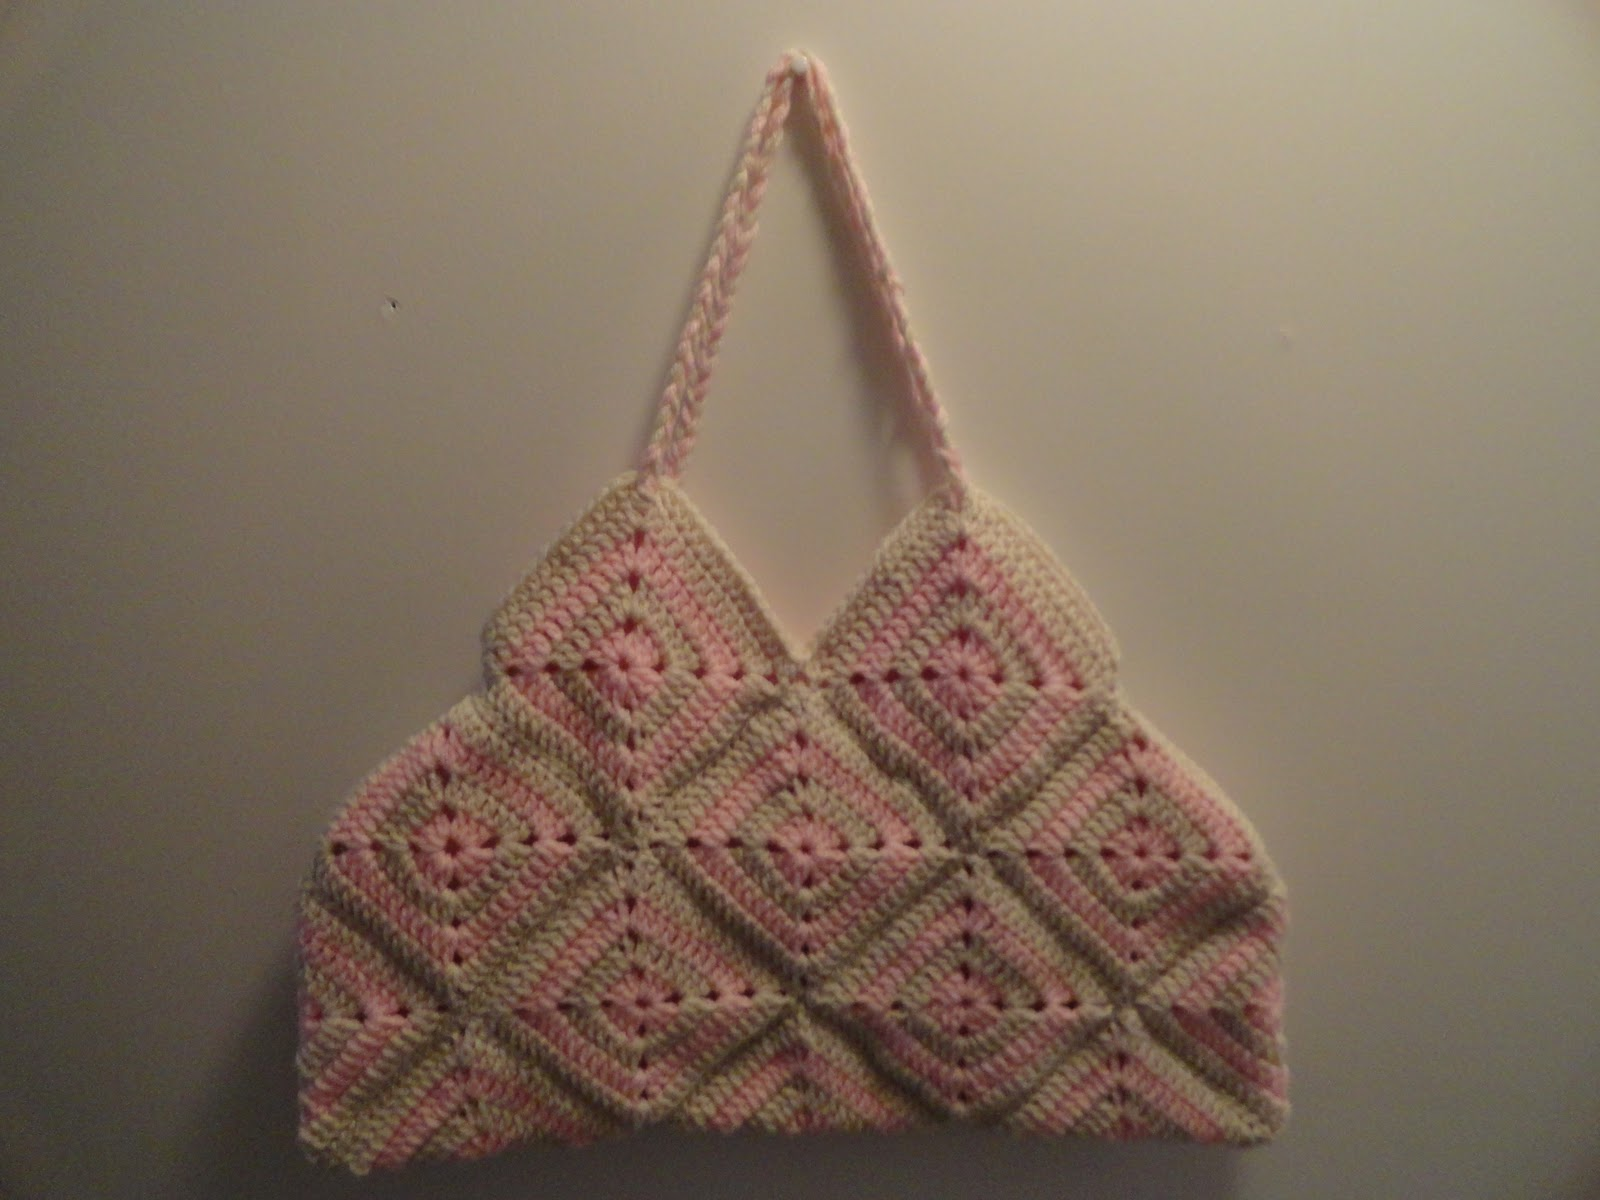 Crochet Crazy Mama: Crochet Granny Square Handbag/Purse - Blog ...